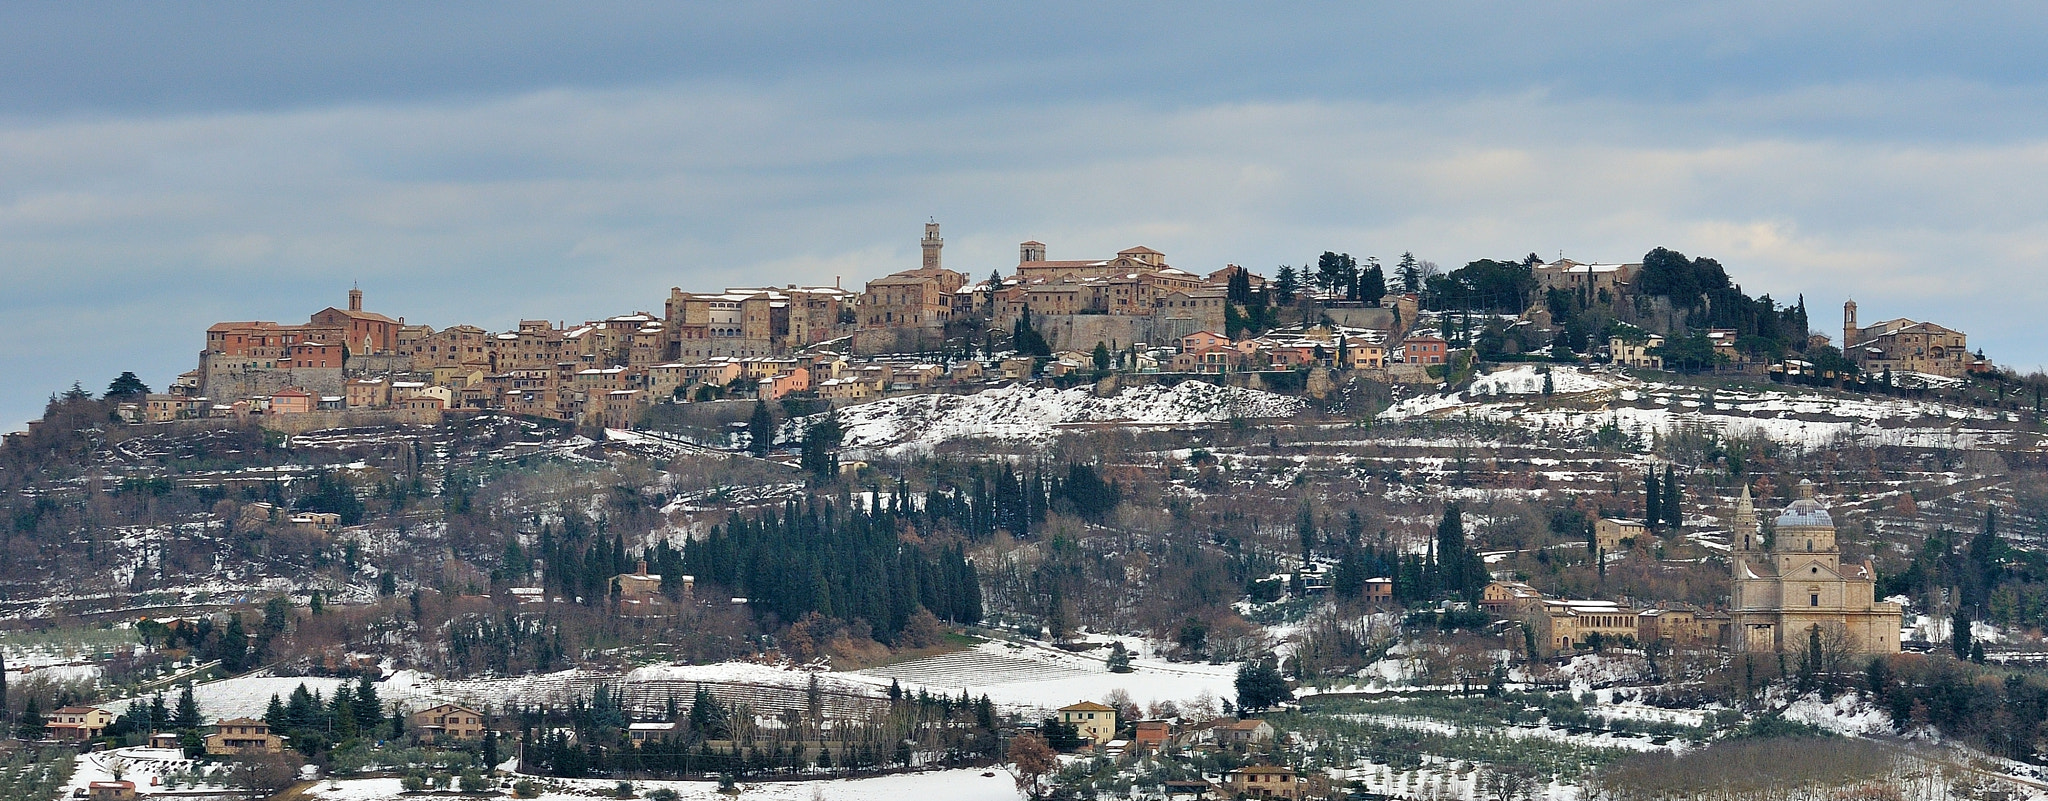 Photograph View of Montepulciano. by Renato Pantini on 500px